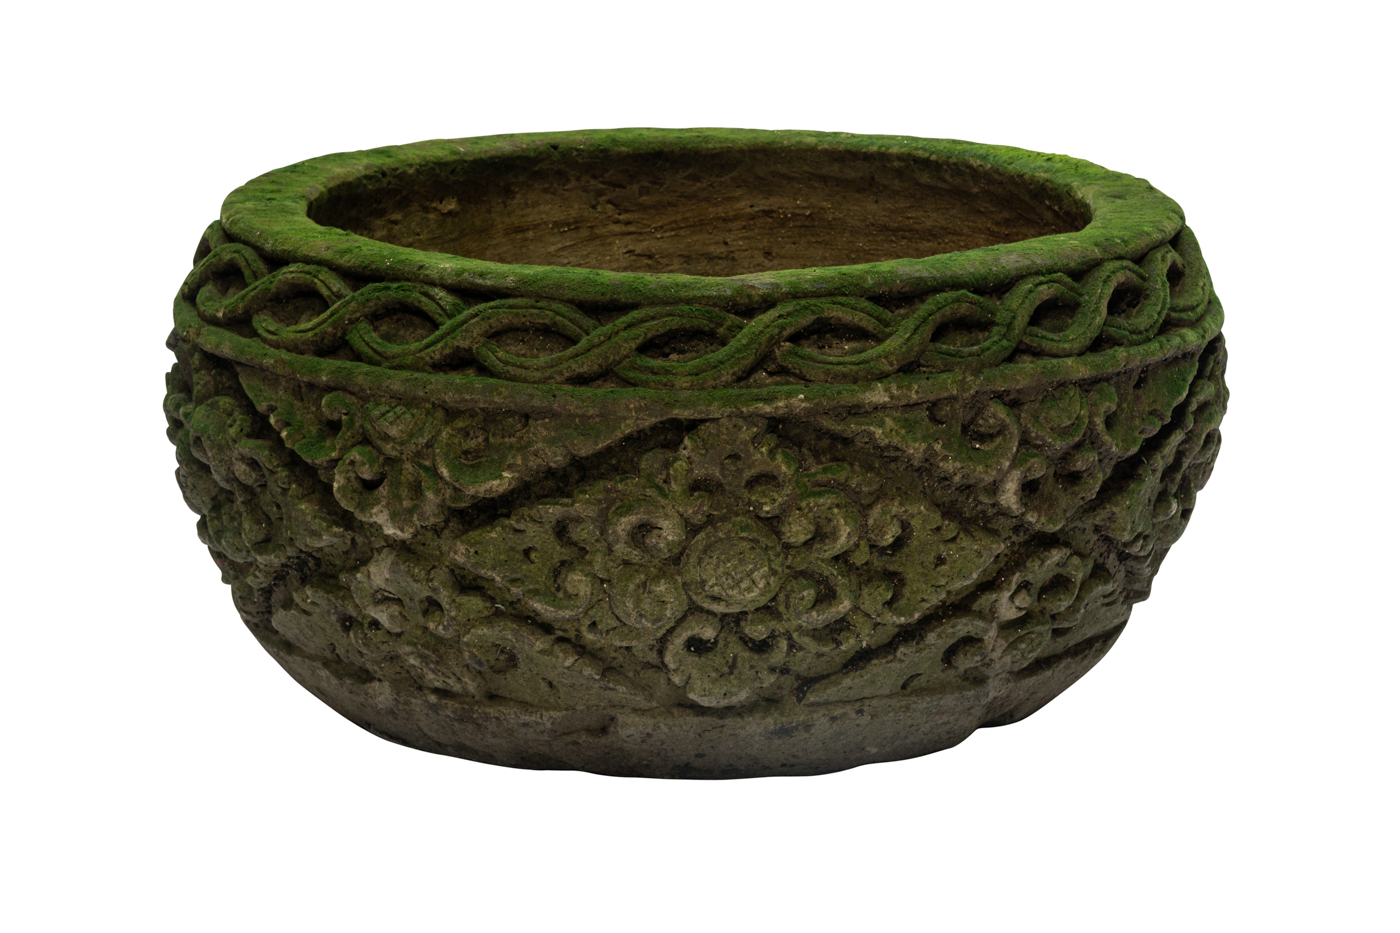 Carved  stone pot with natural green rhombus design